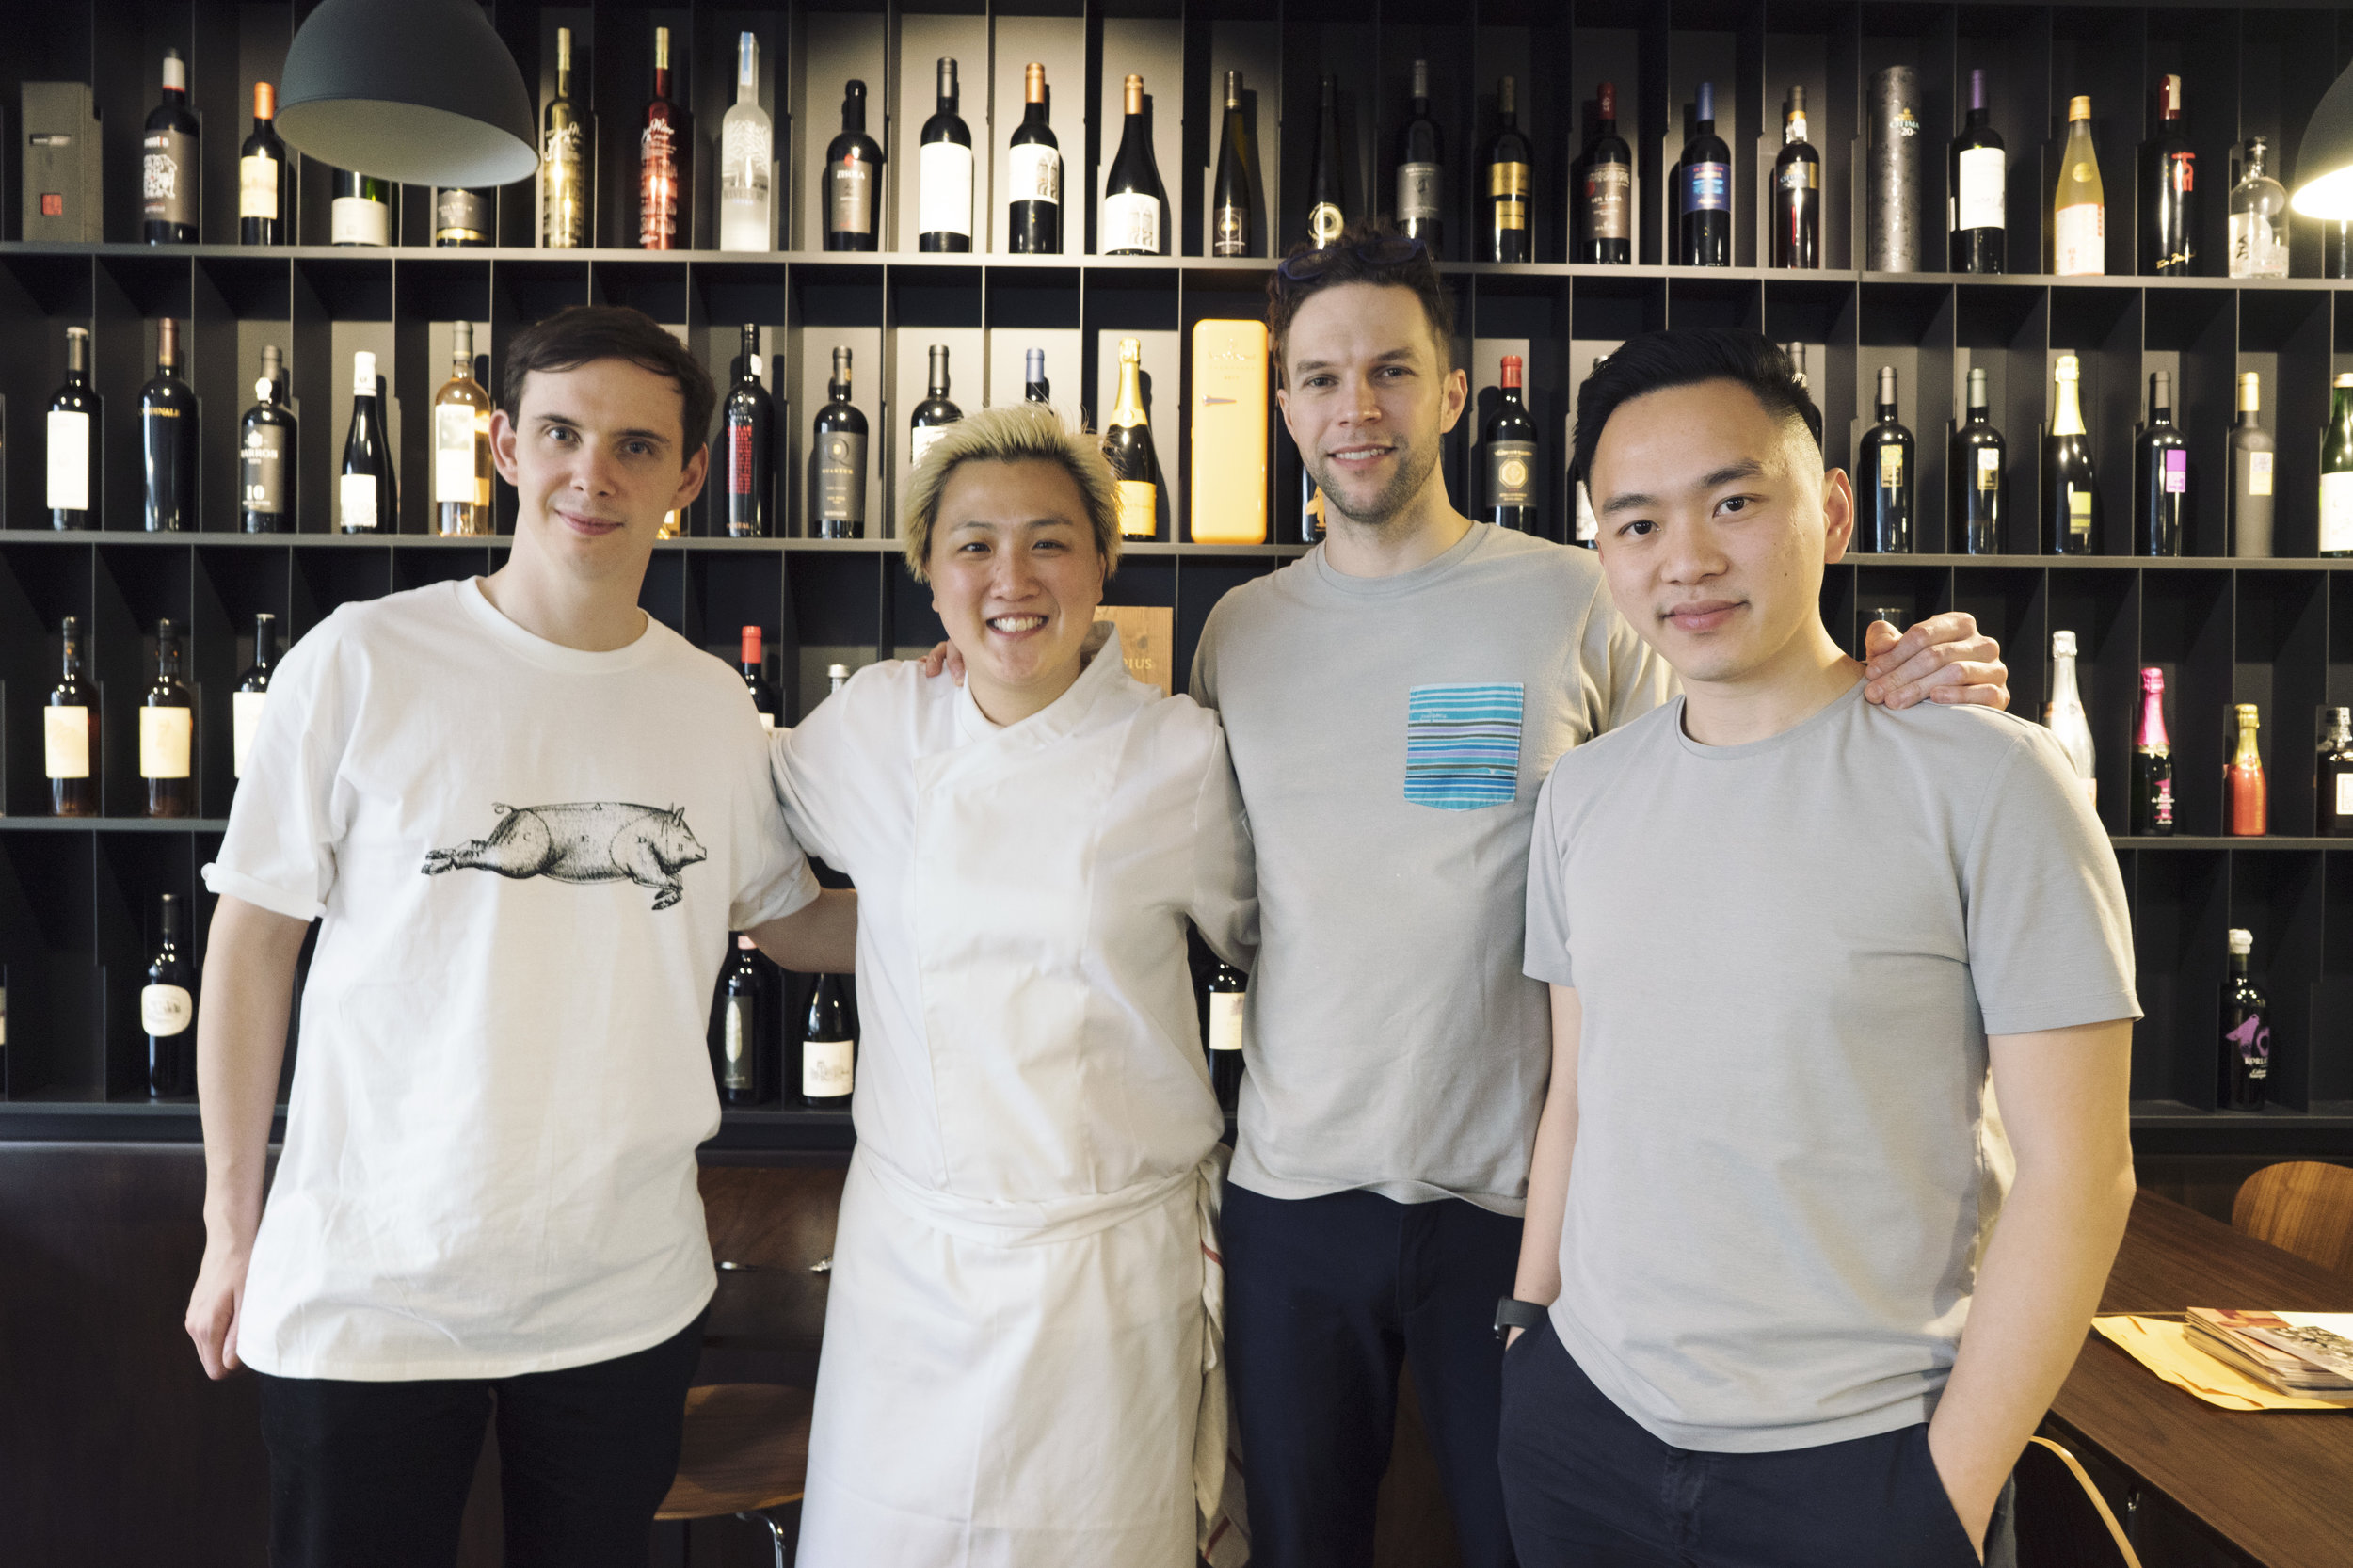 PMQ's Taste Kitchen is Hong Kong's premier F&B incubator, - which aims to nurture and promote the city's most promising up-and-coming culinary talents.